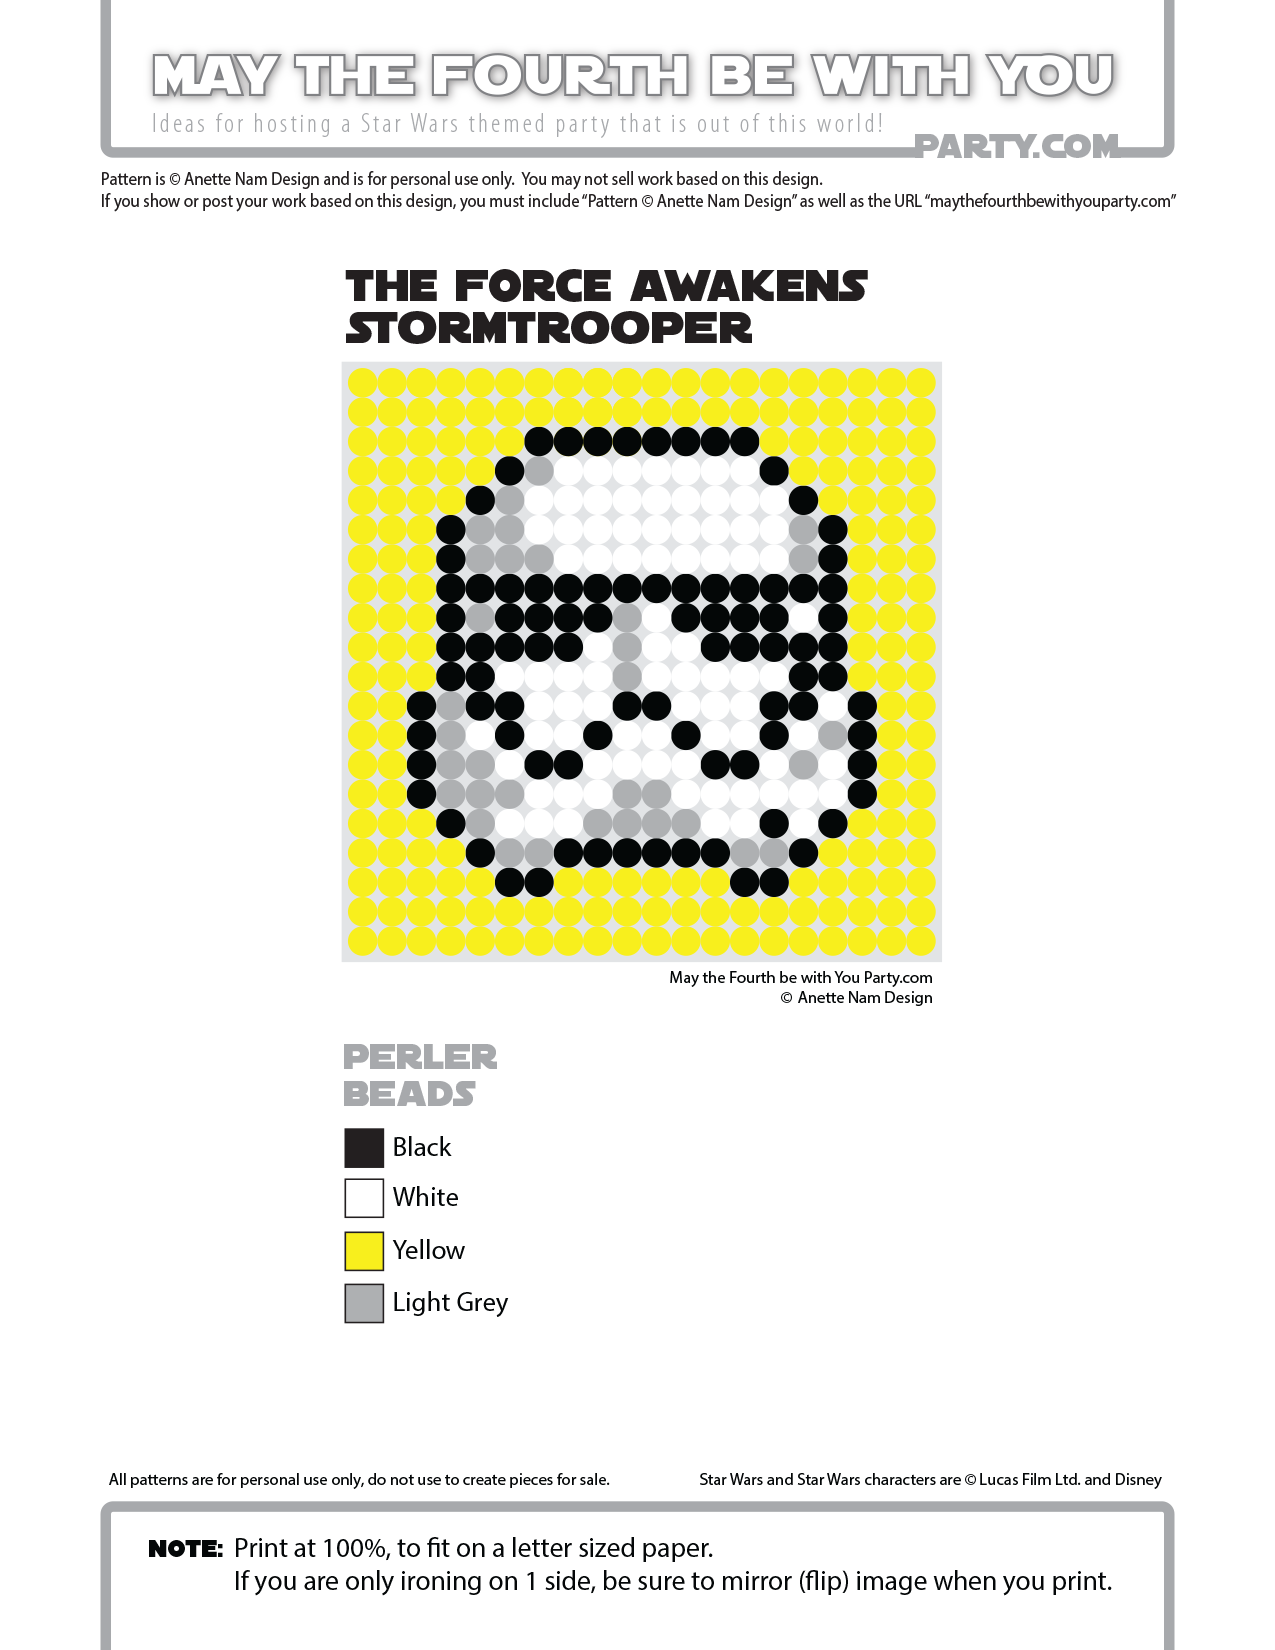 The Force Awakens Stormtrooper Perler Pixel Pattern | May the Fourth